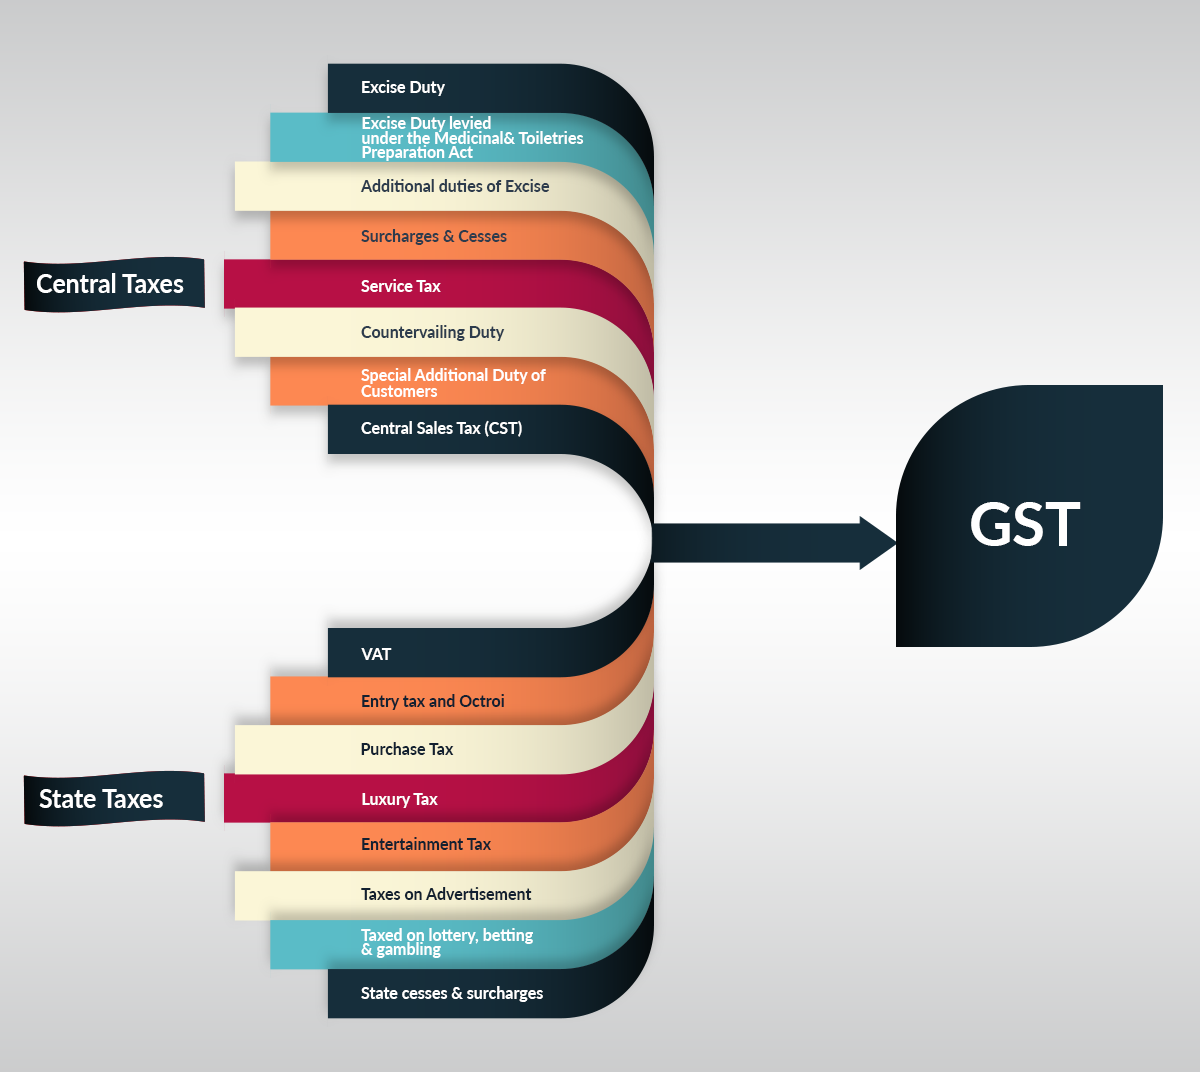 GST consolidates multiple taxes into one